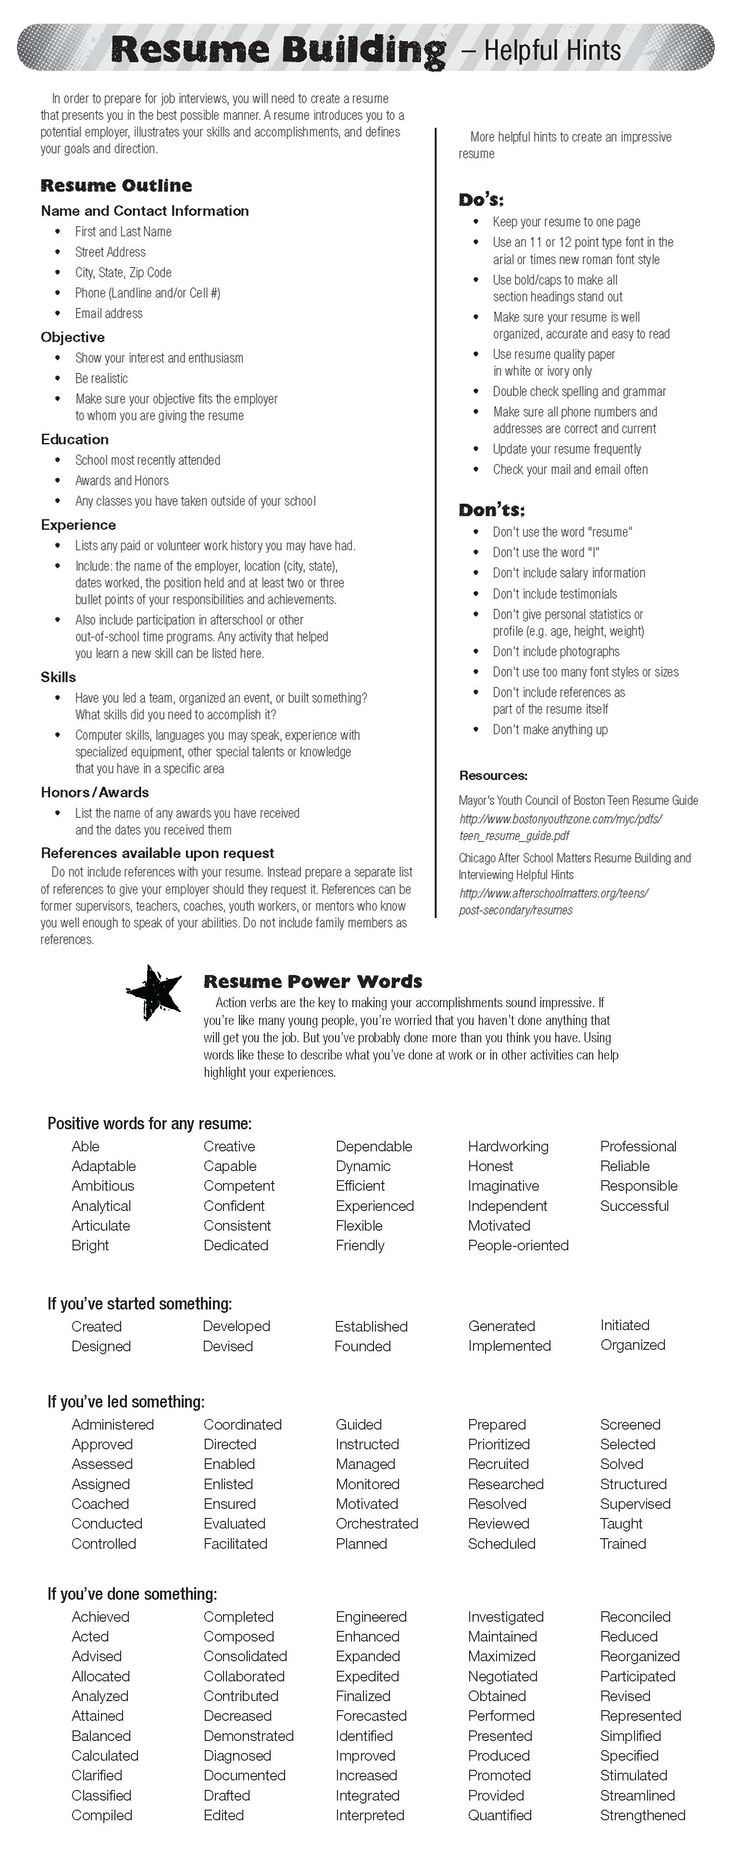 Opposenewapstandardsus  Inspiring  Ideas About Resume On Pinterest  Cv Format Resume Cv And  With Exciting  Ideas About Resume On Pinterest  Cv Format Resume Cv And Resume Templates With Divine Basic Skills For Resume Also Resuming Definition In Addition Housekeeping Supervisor Resume And Network Engineer Resume Sample As Well As Underwriter Resume Additionally Resume For Warehouse Worker From Pinterestcom With Opposenewapstandardsus  Exciting  Ideas About Resume On Pinterest  Cv Format Resume Cv And  With Divine  Ideas About Resume On Pinterest  Cv Format Resume Cv And Resume Templates And Inspiring Basic Skills For Resume Also Resuming Definition In Addition Housekeeping Supervisor Resume From Pinterestcom